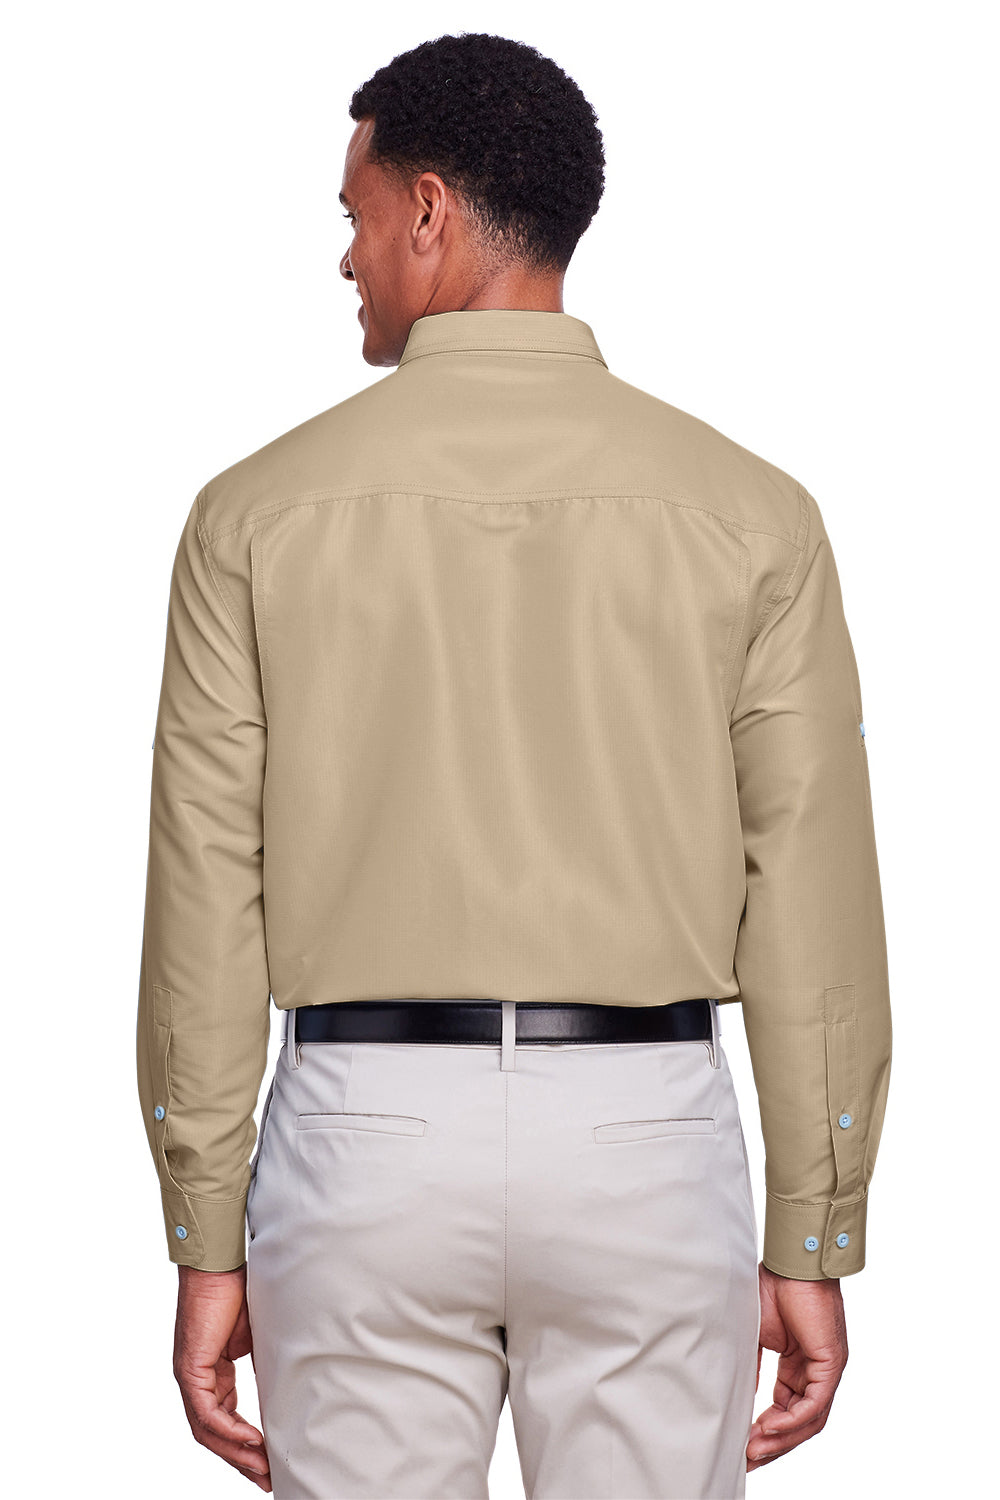 Harriton M580L Mens Key West Performance Moisture Wicking Long Sleeve Button Down Shirt Khaki Brown Back